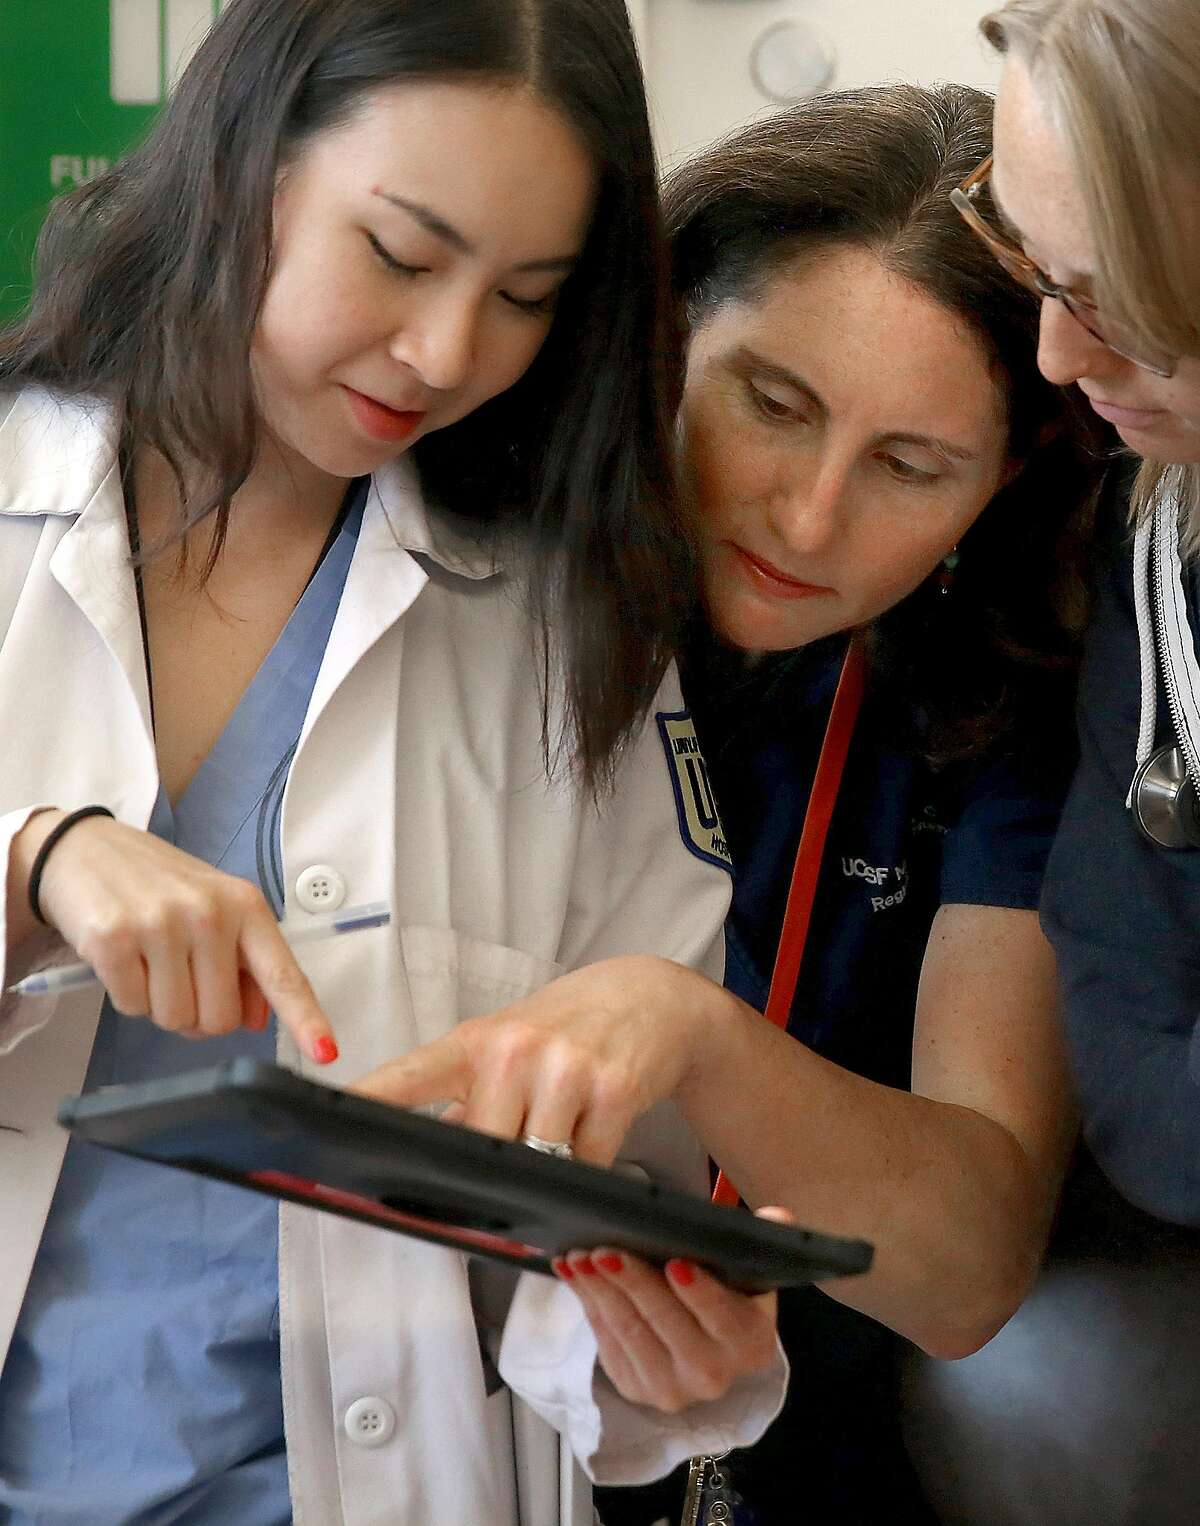 Denise Chang, MD (left) uses the software of Project Emerge on a tablet with Denise Barchas, RN (middle),and Laura Schoenher, MD (right) as the staff make patient rounds in an intensive care unit at UCSF hospital on Wednesday, June 15, 2016 in San Francisco, Calif.. UCSF and Johns Hopkins University School of Medicine are testing software they hope will improve intensive care.